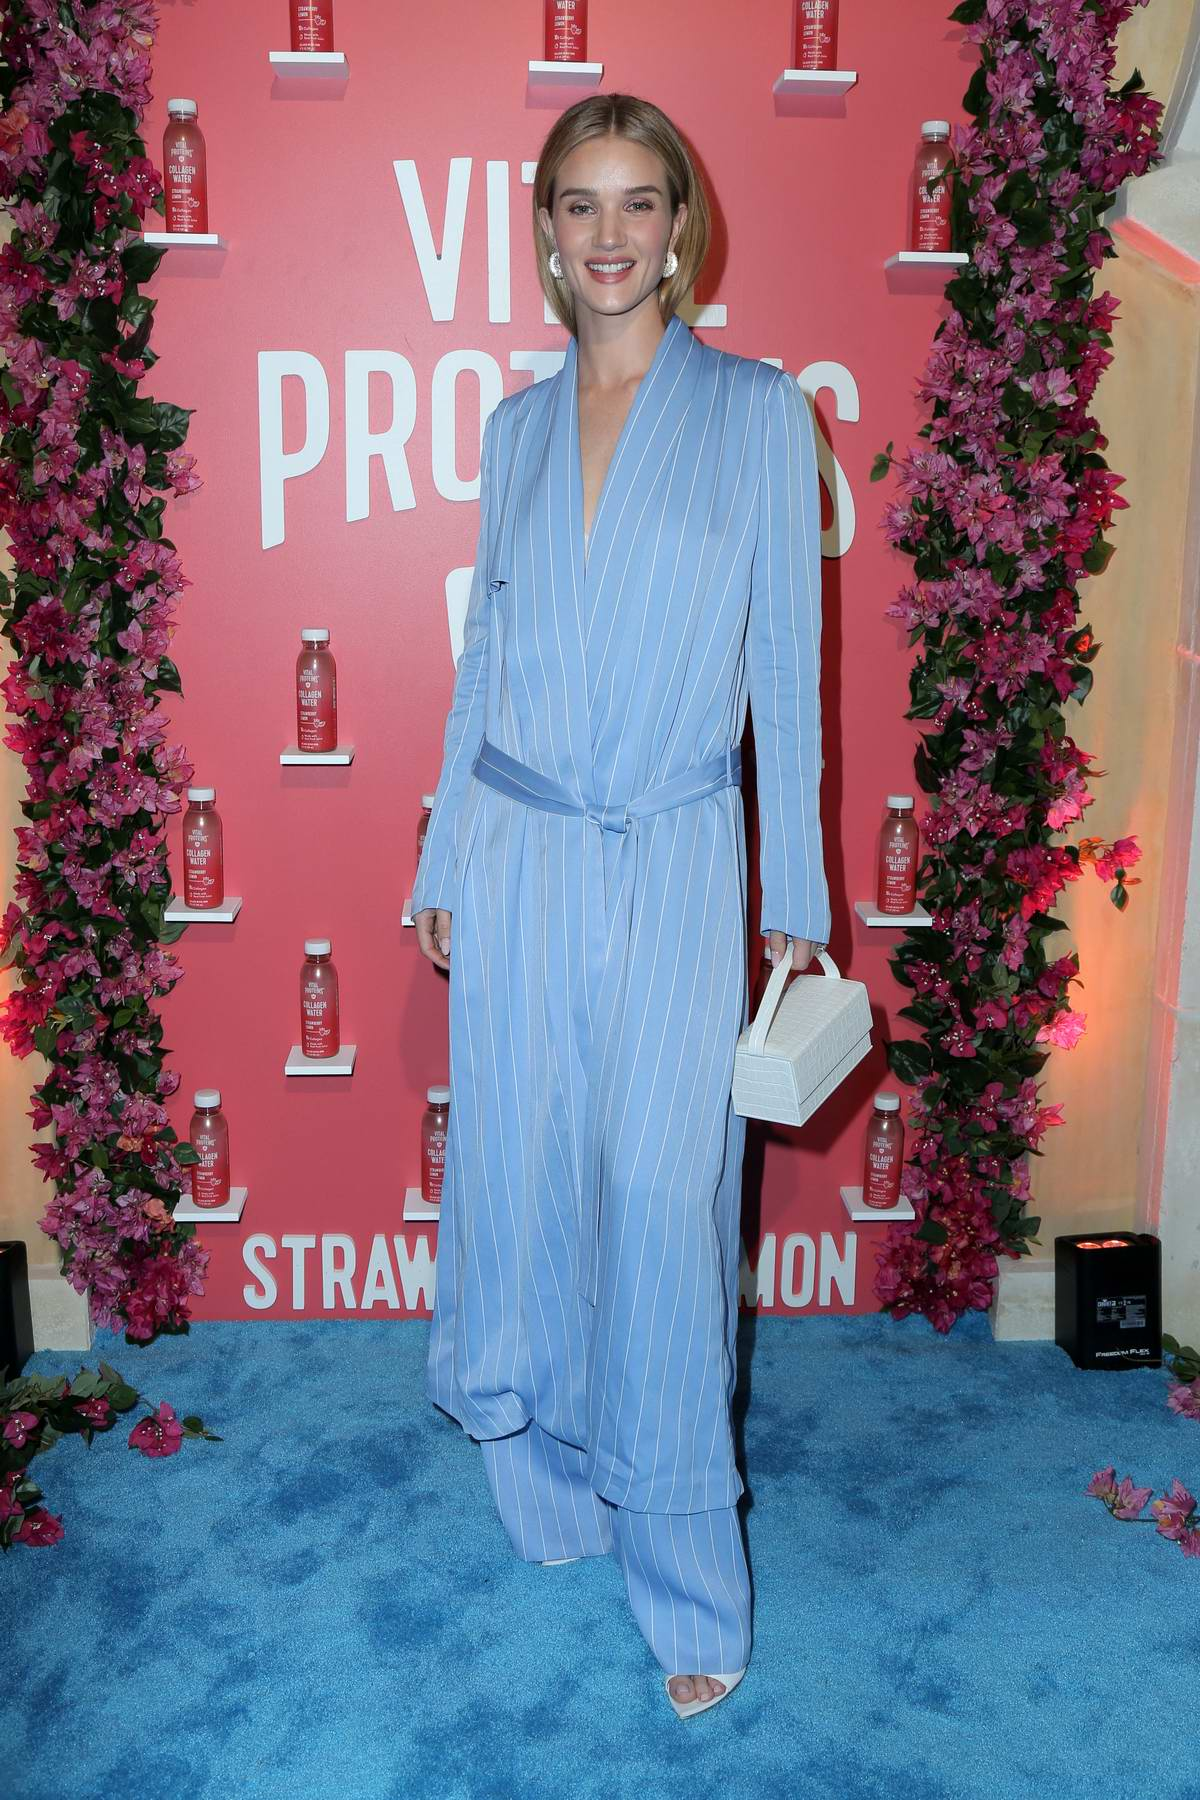 Rosie Huntington-Whiteley attends Vital Proteins' Collagen Water Launch Party in Irvine, California